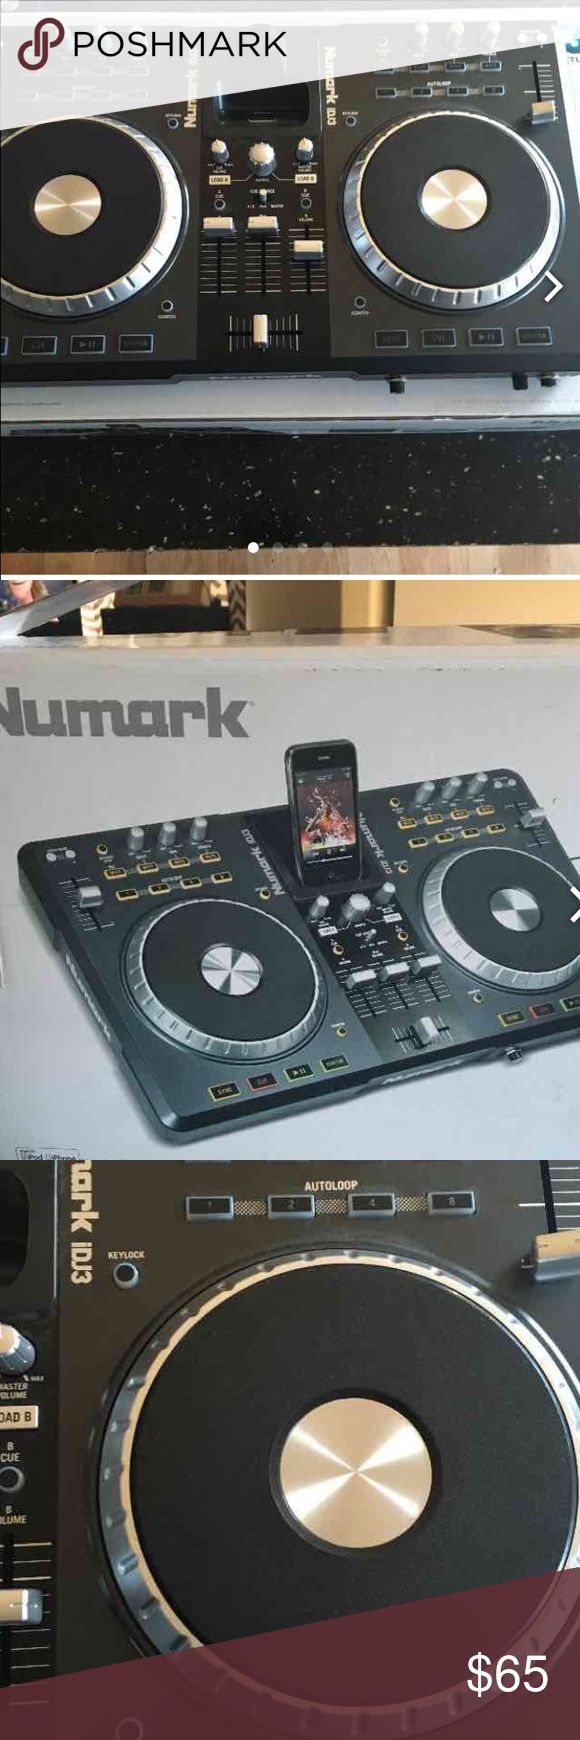 Selling on Mercari. Numark iDJ3 Mixer. Professional DJ mixer. Includes Virual DJ LE mixing software. New with box. Retail Price: $300. Apple 30 pin dock connector. Cords included. Numark Other